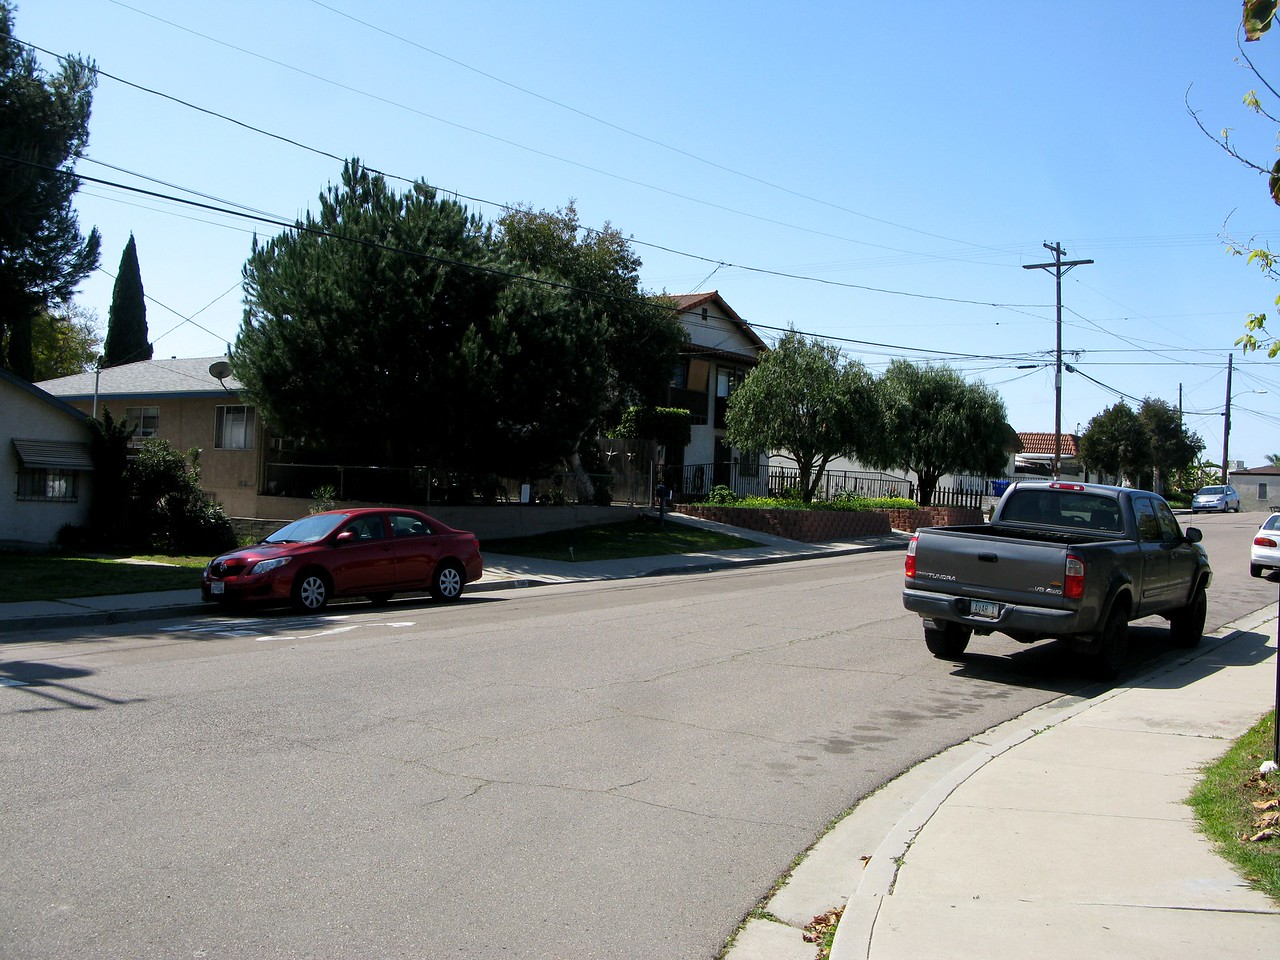 Looking down Dwight Street. The houses in this photo were constructed after the accident. The previous structures were destroyed by fire.